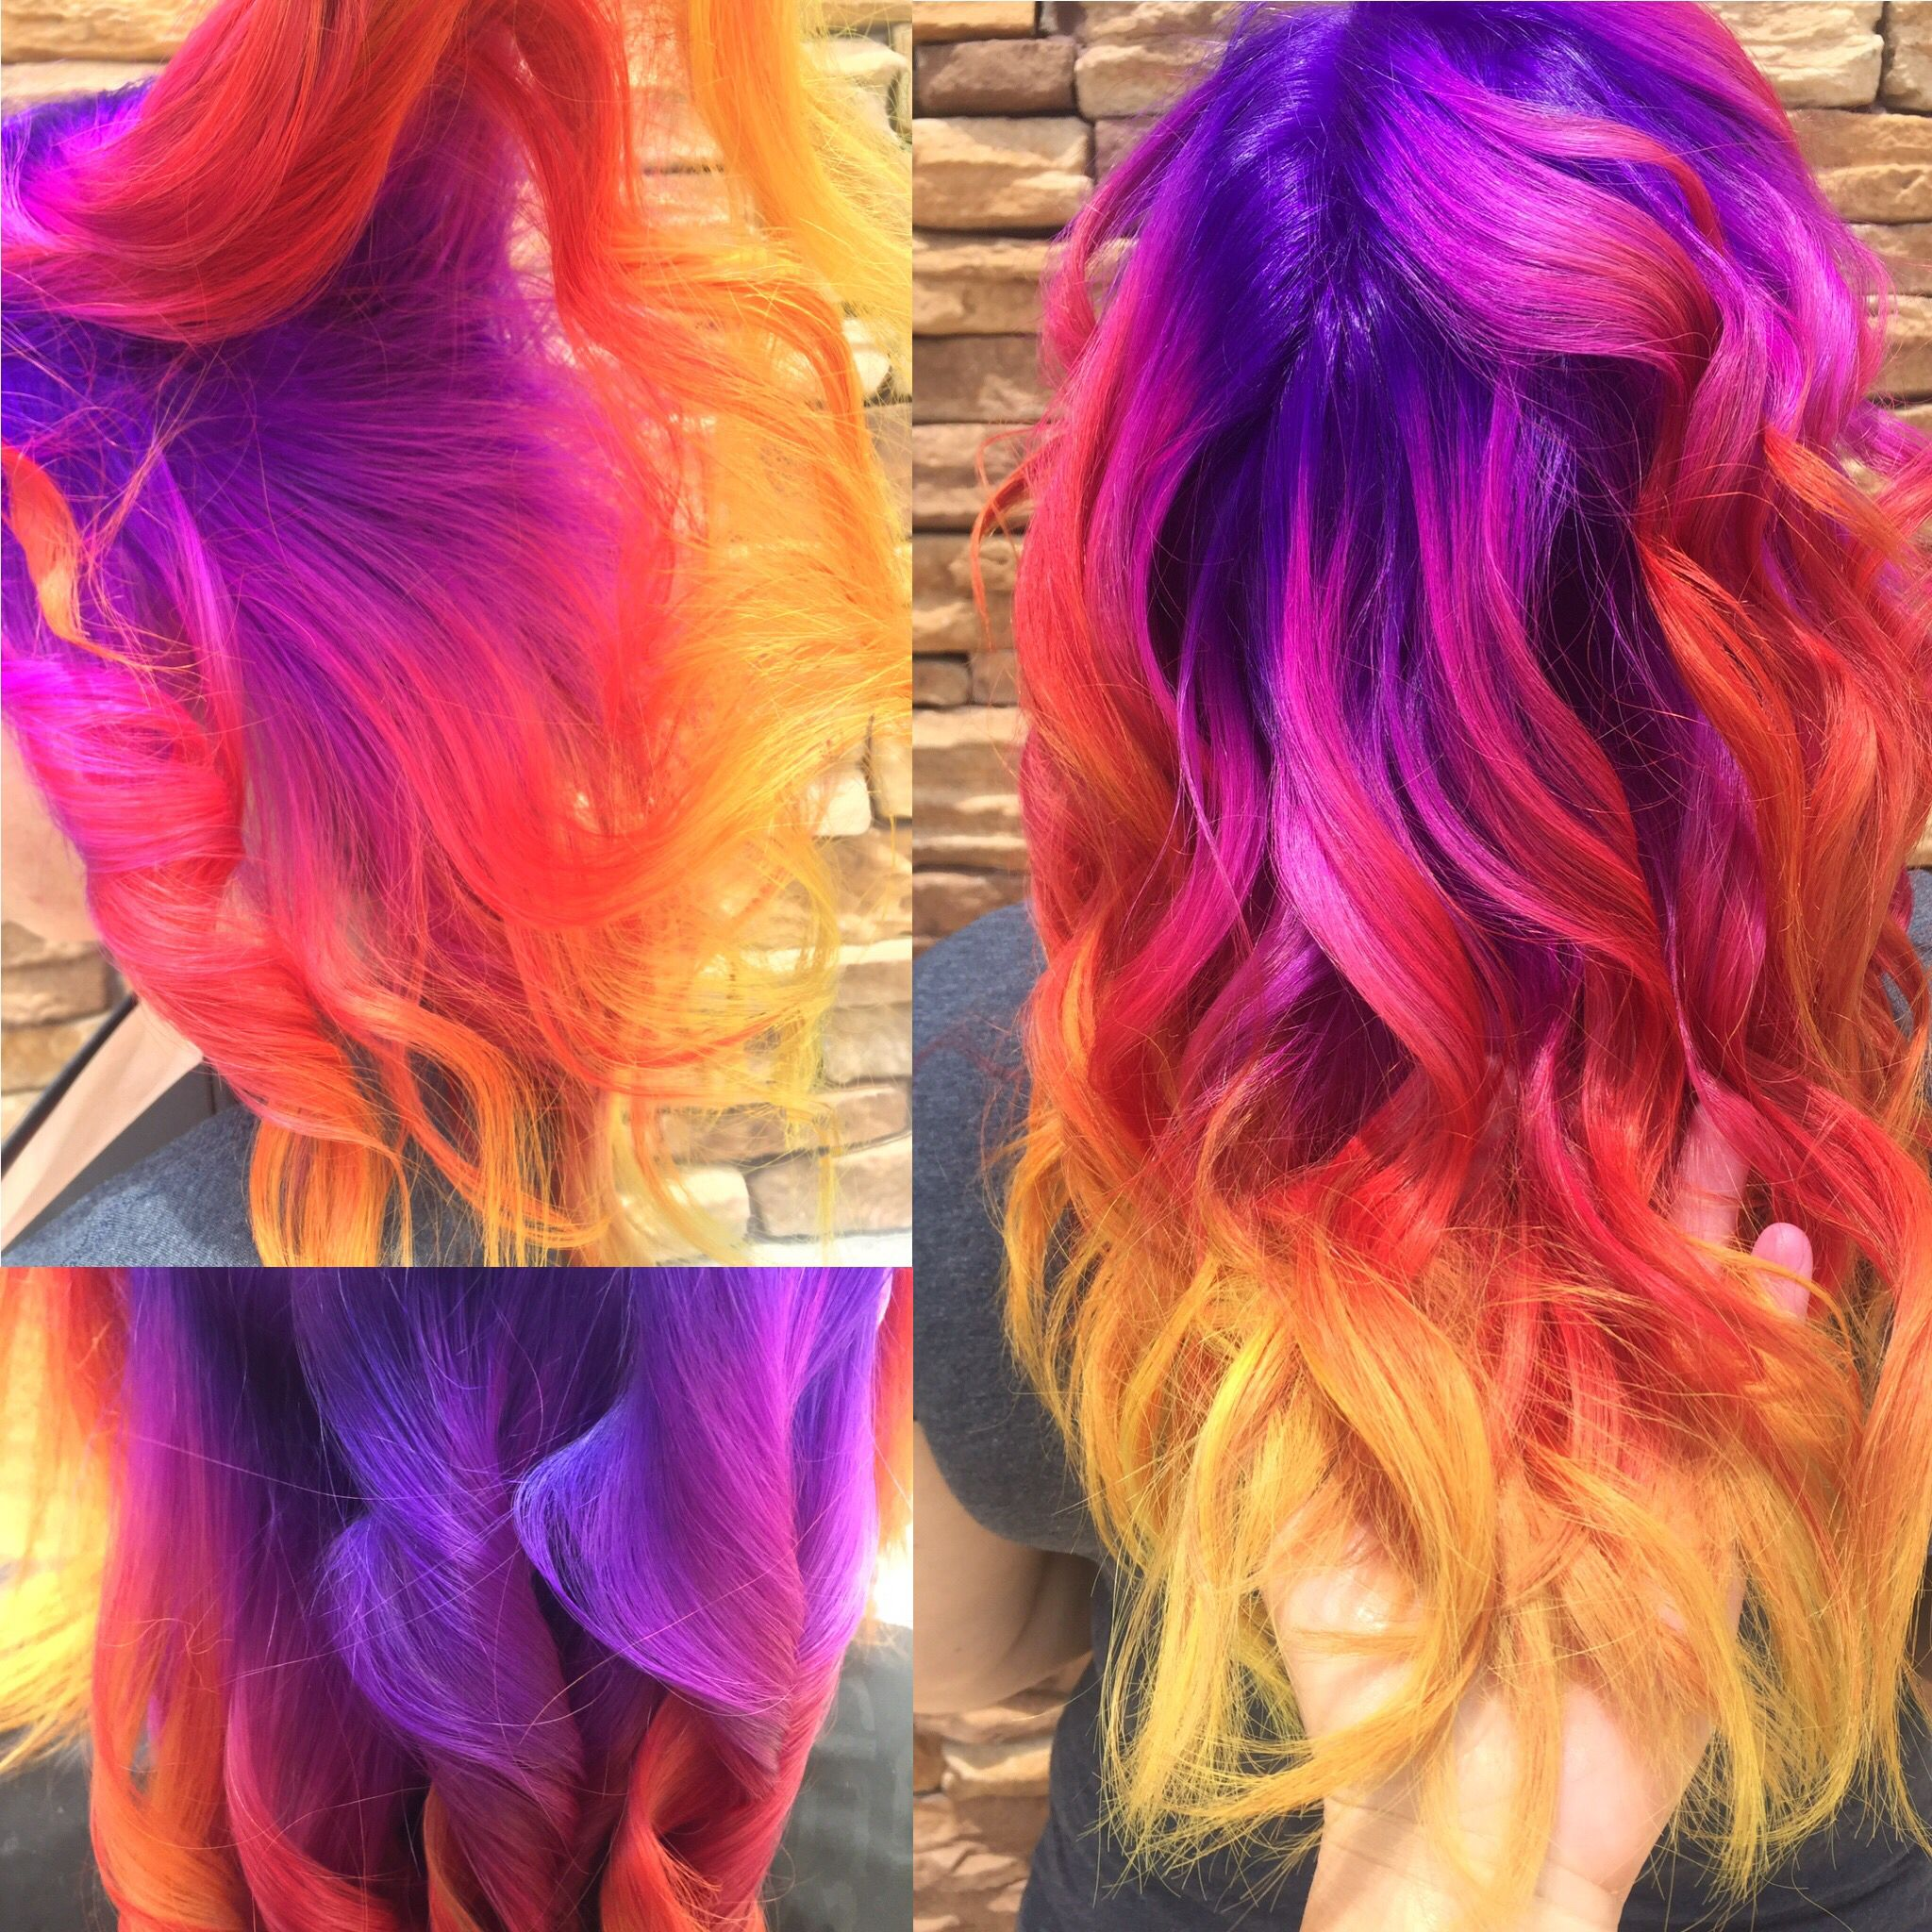 Rainbow Hair Purple Hair Yellow Hair Orange Hair Pink Hair Neon